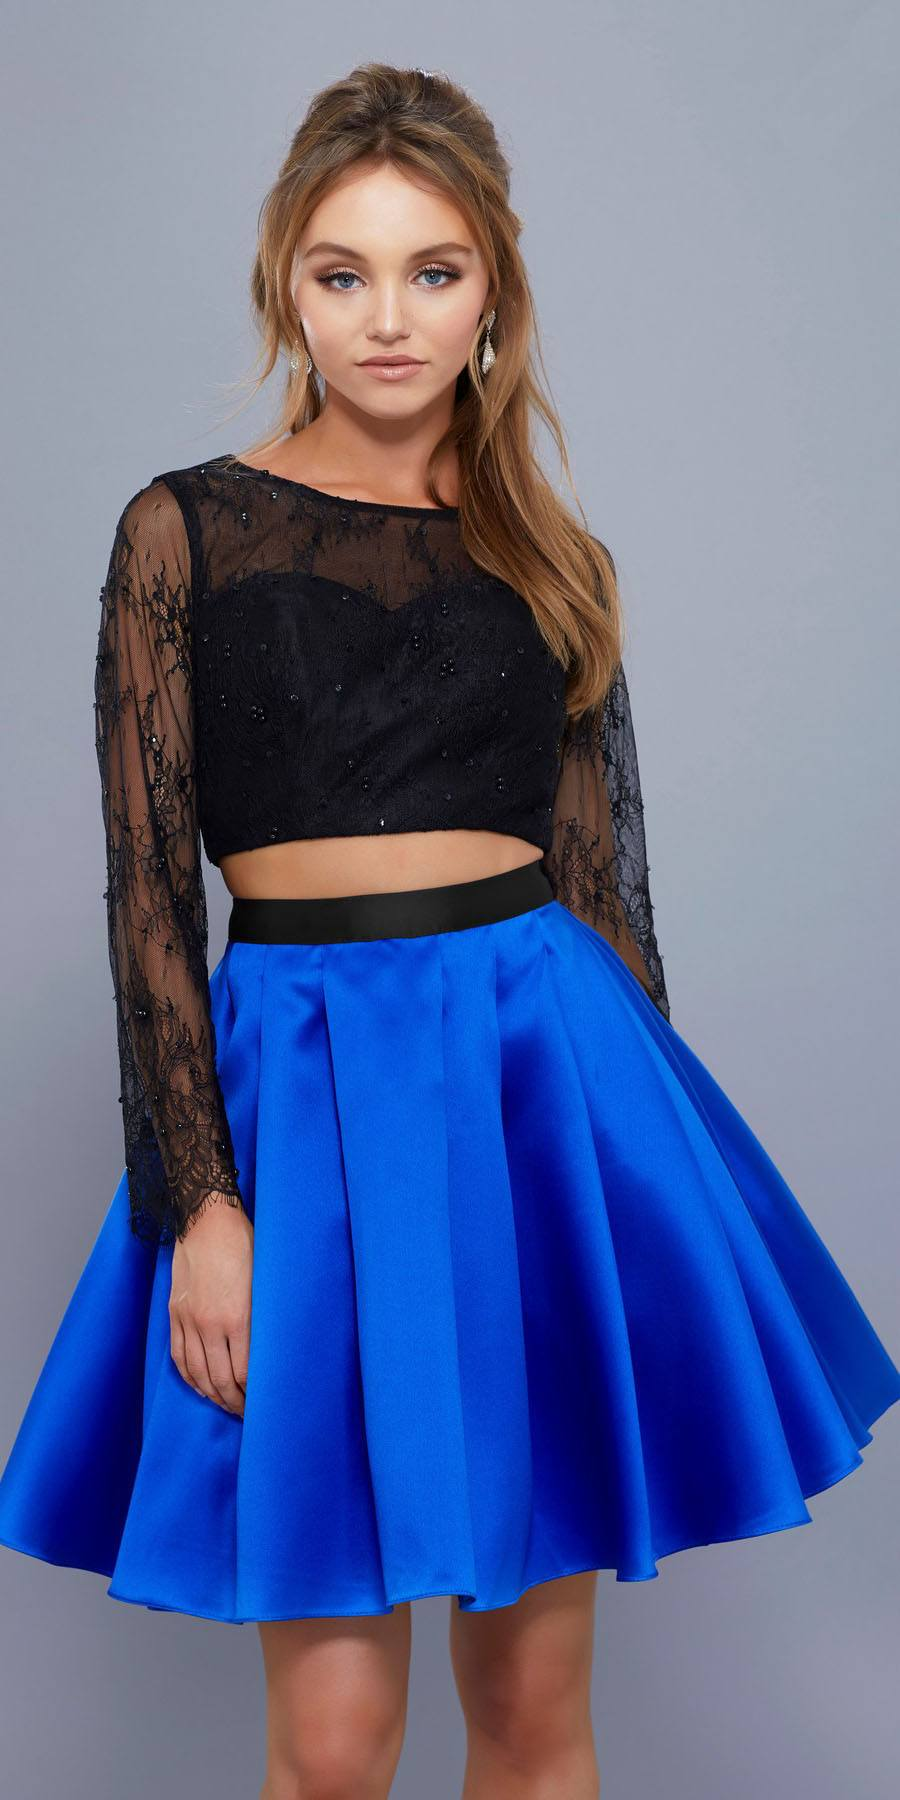 d135e7c51a2 Long Sleeves Lace Top Two-Piece Short Prom Dress Royal-Black. Tap to expand